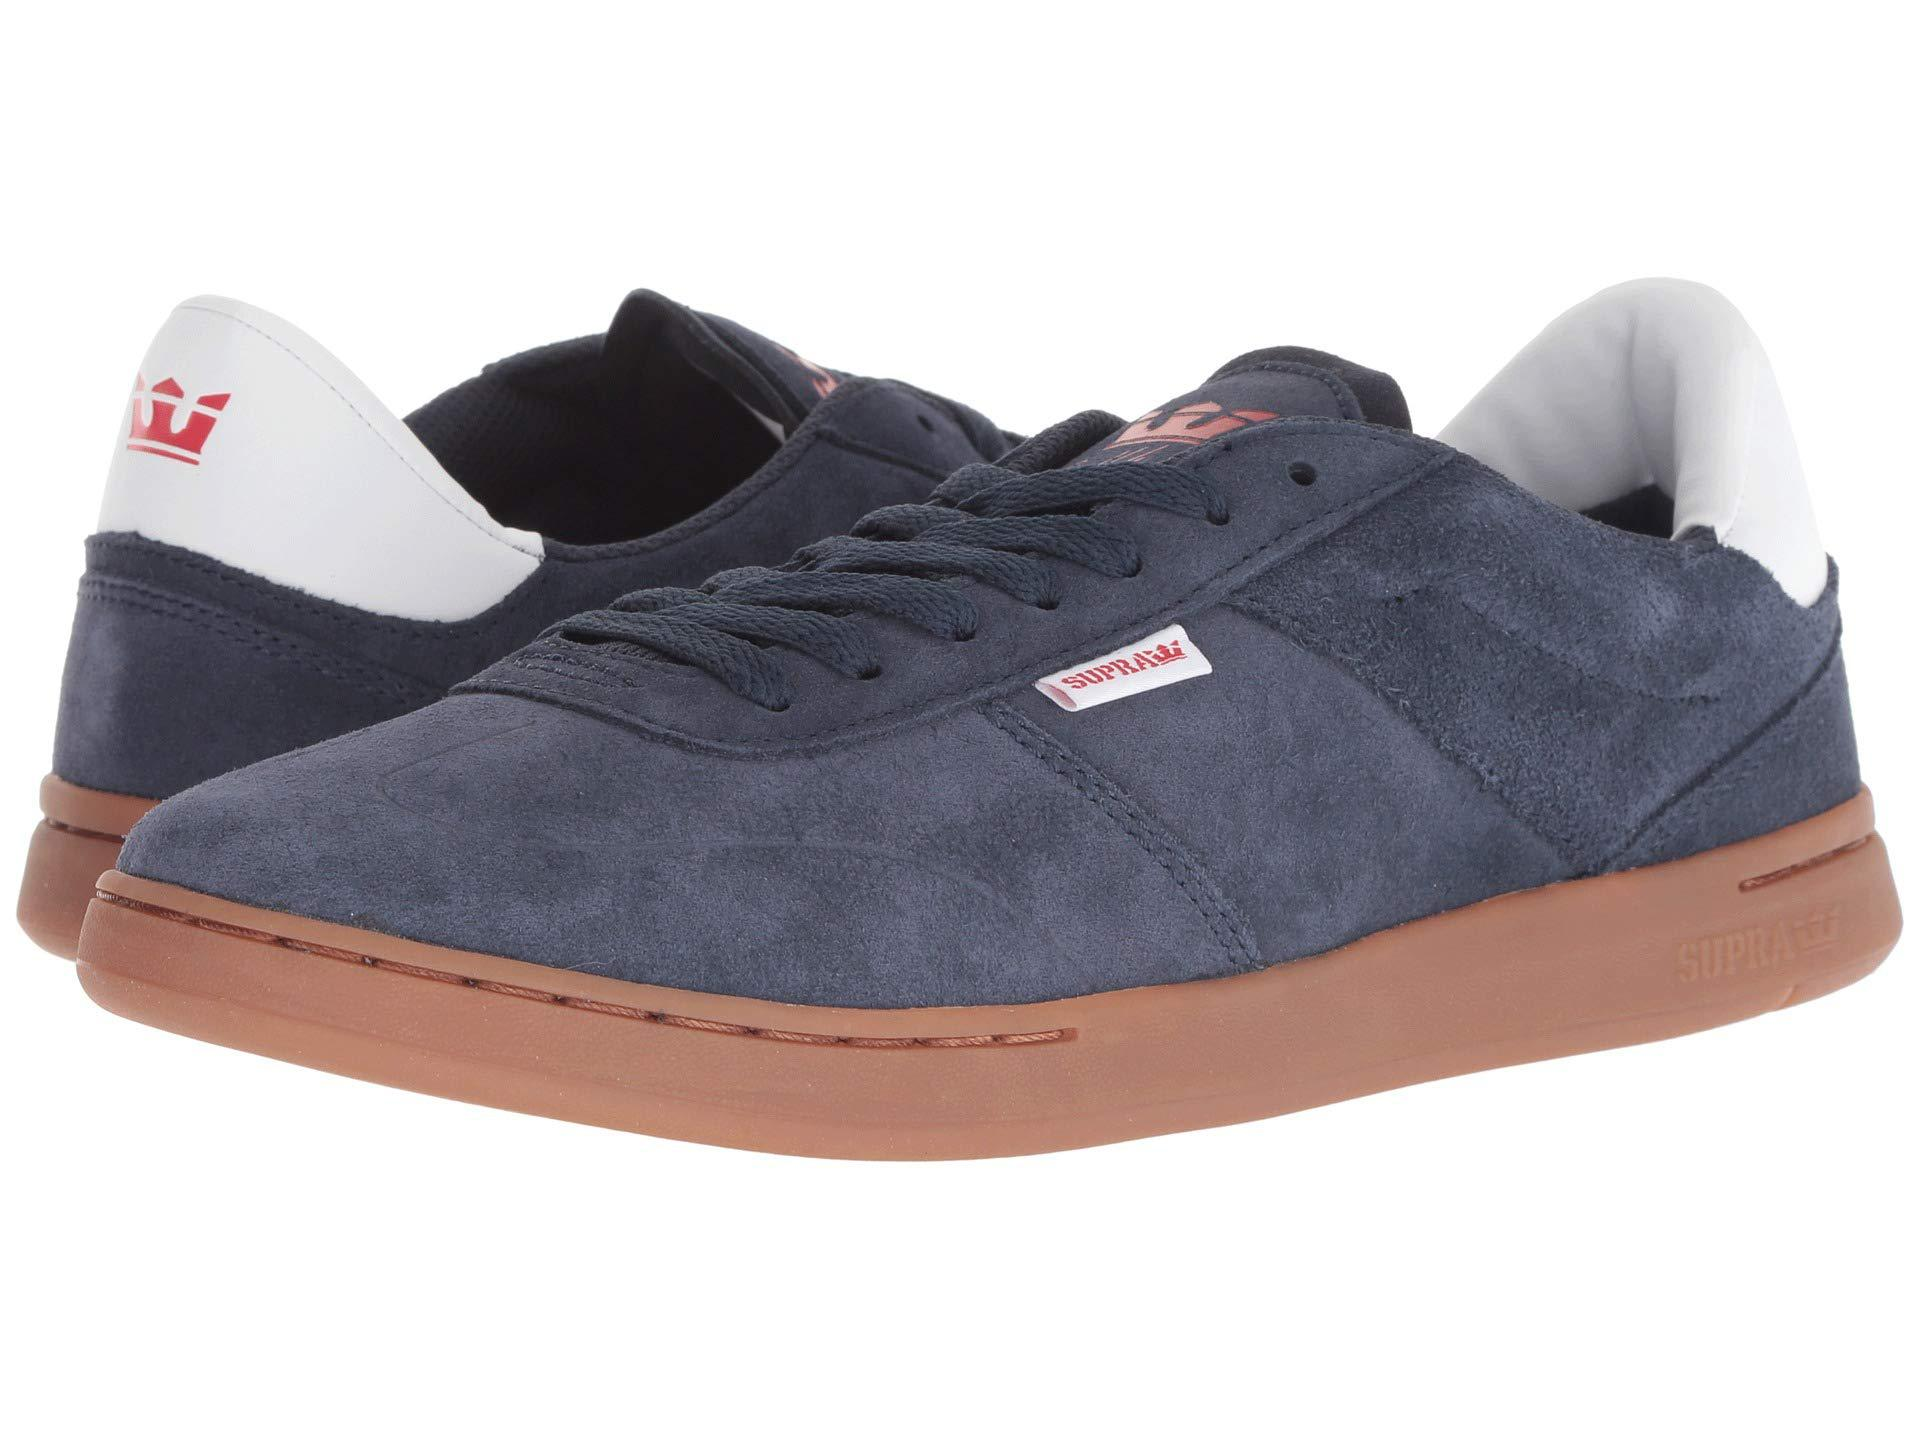 ff6fb4eae5a9 Lyst - Supra Elevate (navy gum) Men s Shoes in Blue for Men